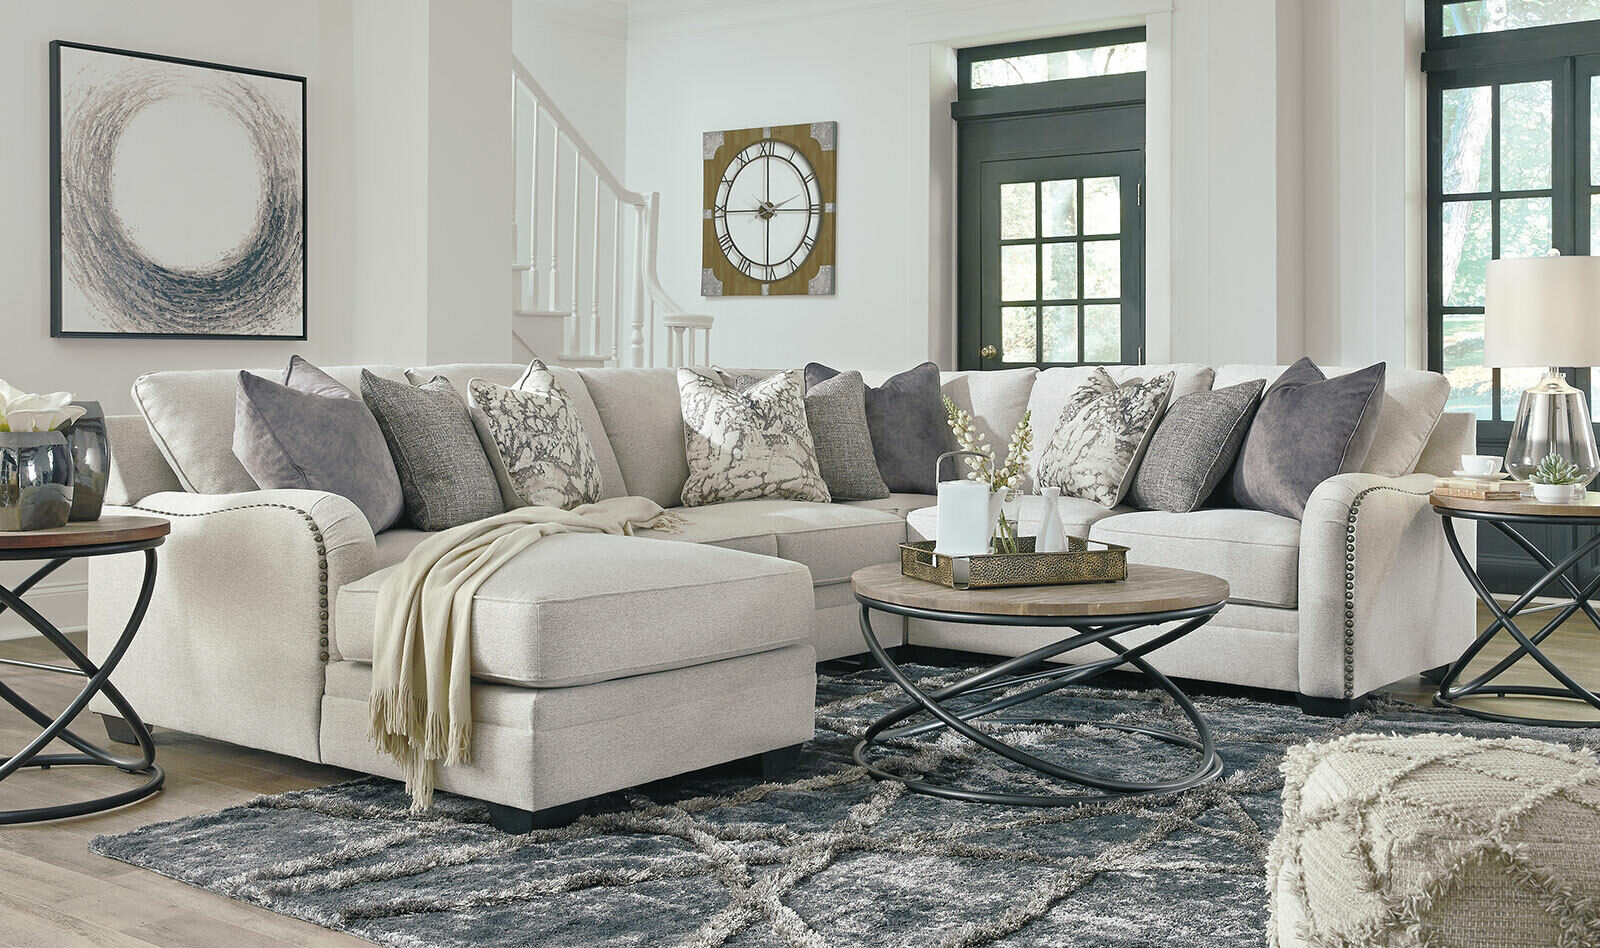 New Sectional Living Room Furniture 4pcs Light Gray Fabric Sofa Chaise Set G0n